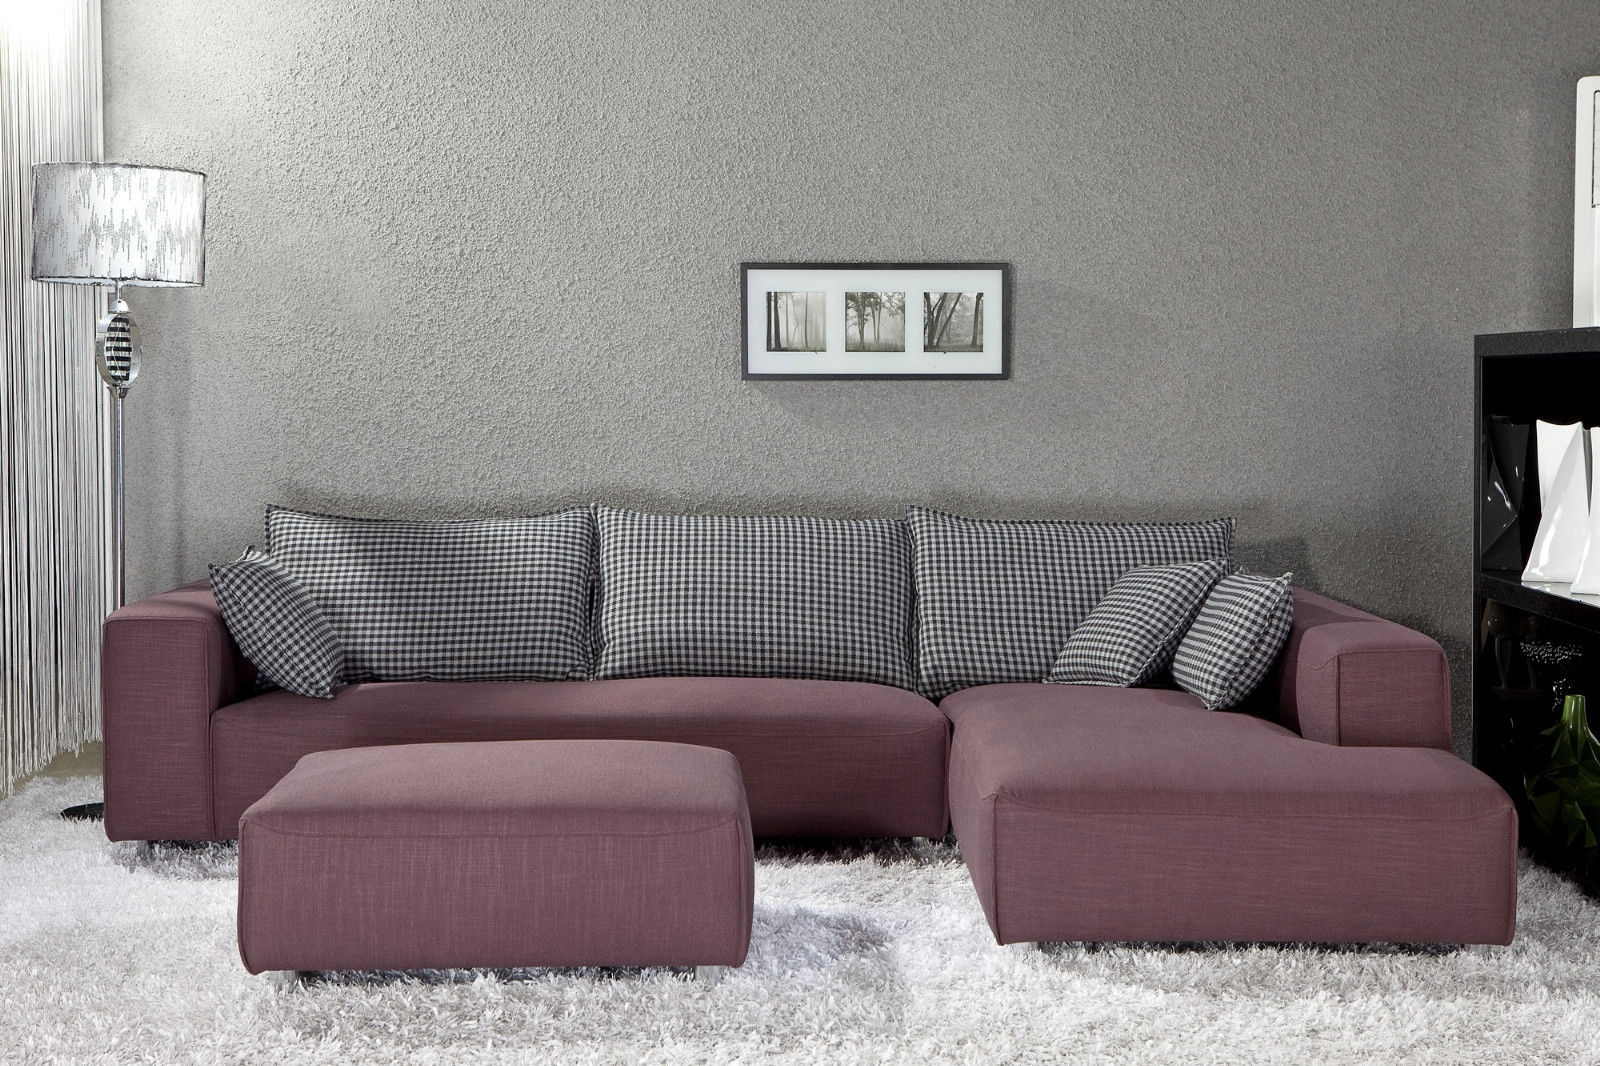 12 Best of Cool Small Sofas